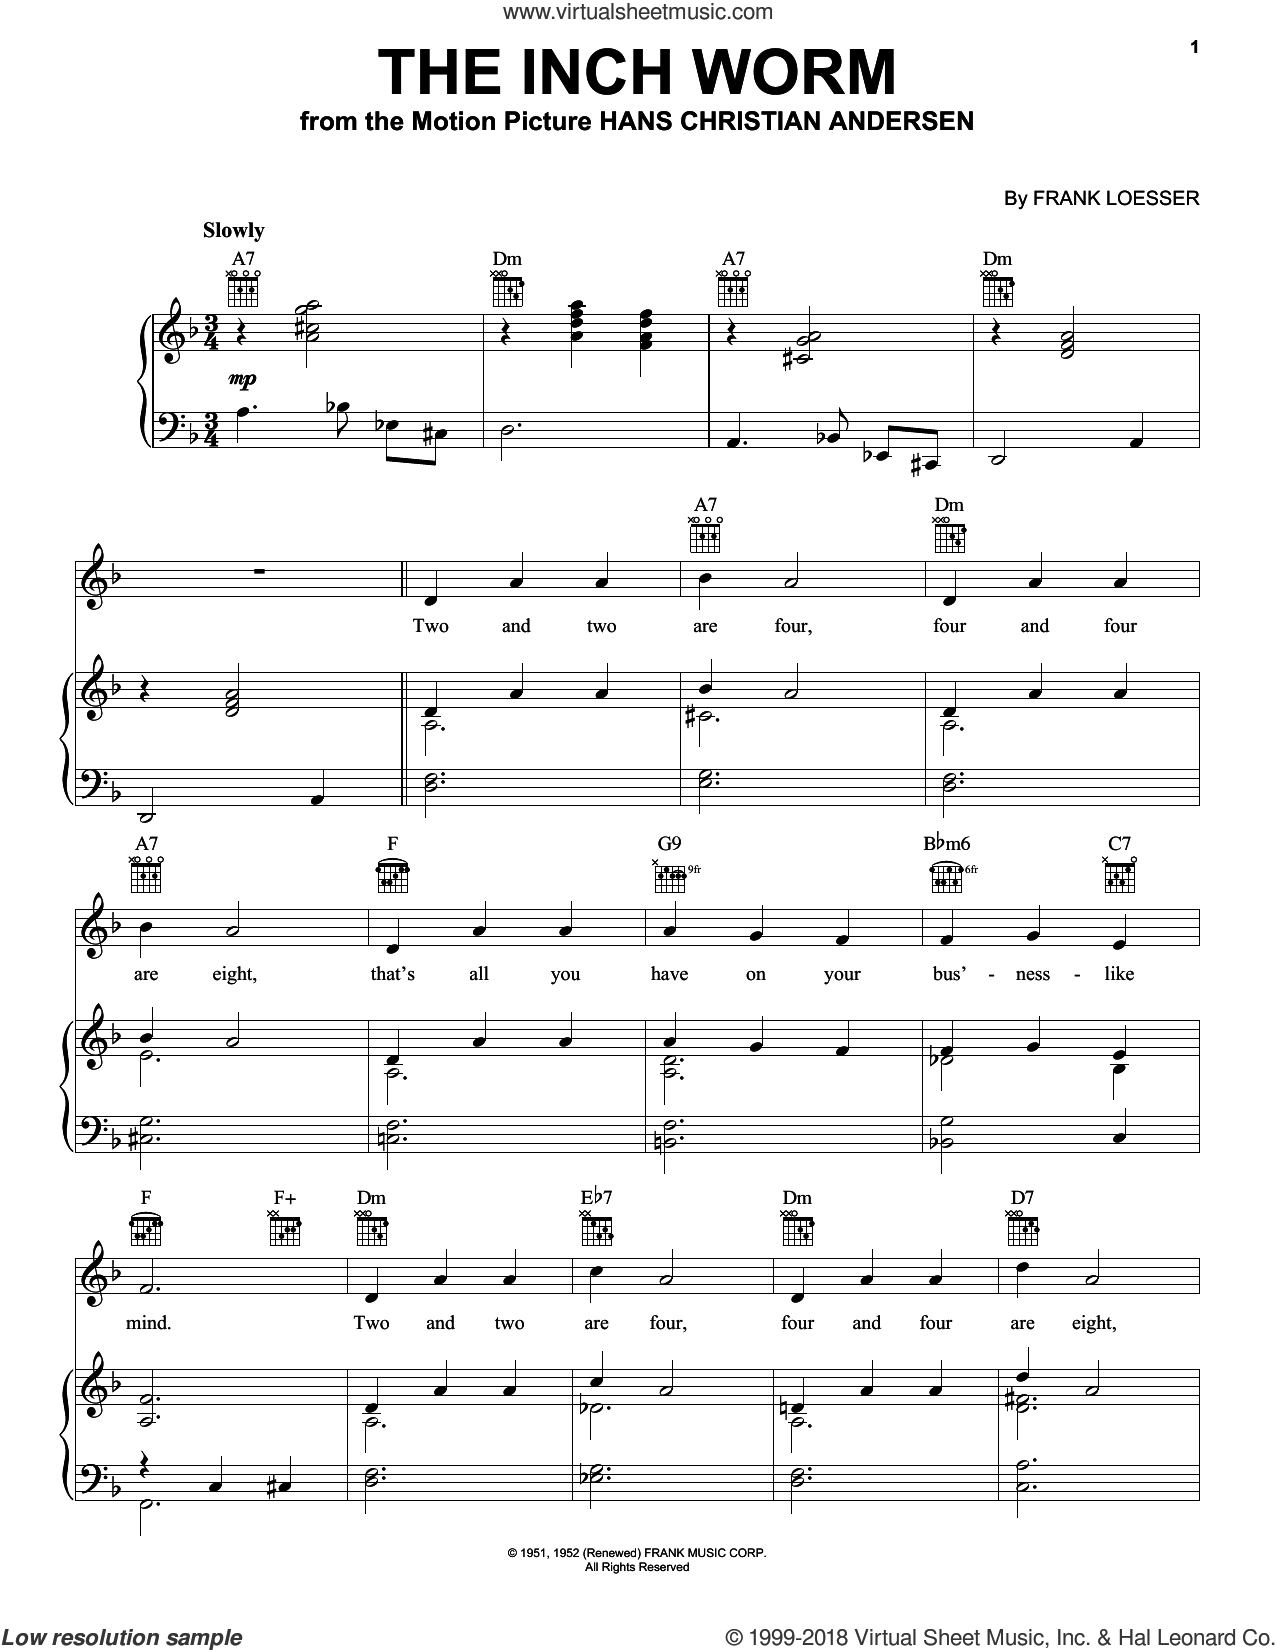 The Inch Worm sheet music for voice, piano or guitar by Frank Loesser, intermediate skill level